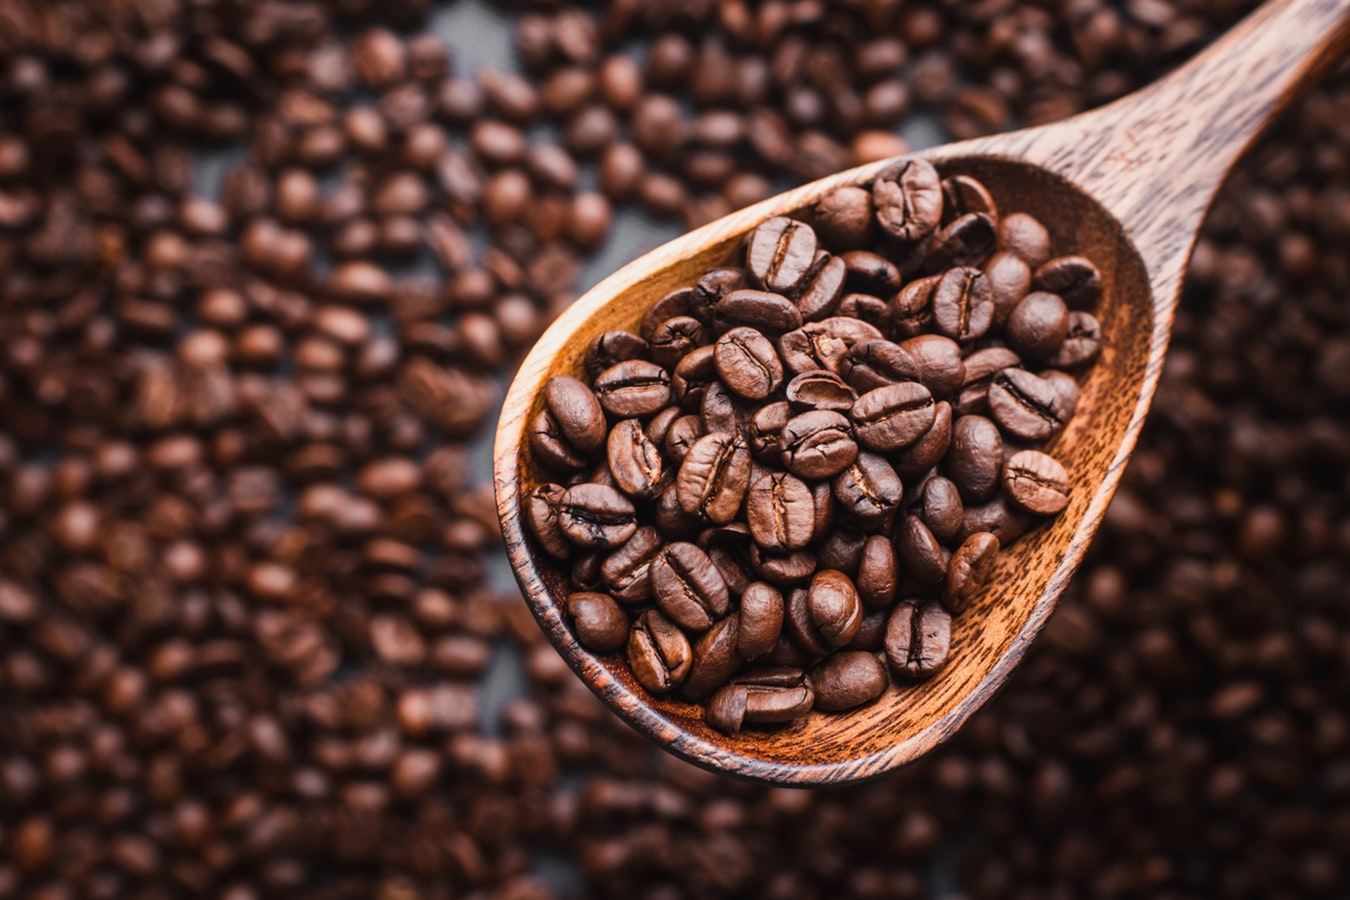 decorative image of coffee beans in a wooden spoon